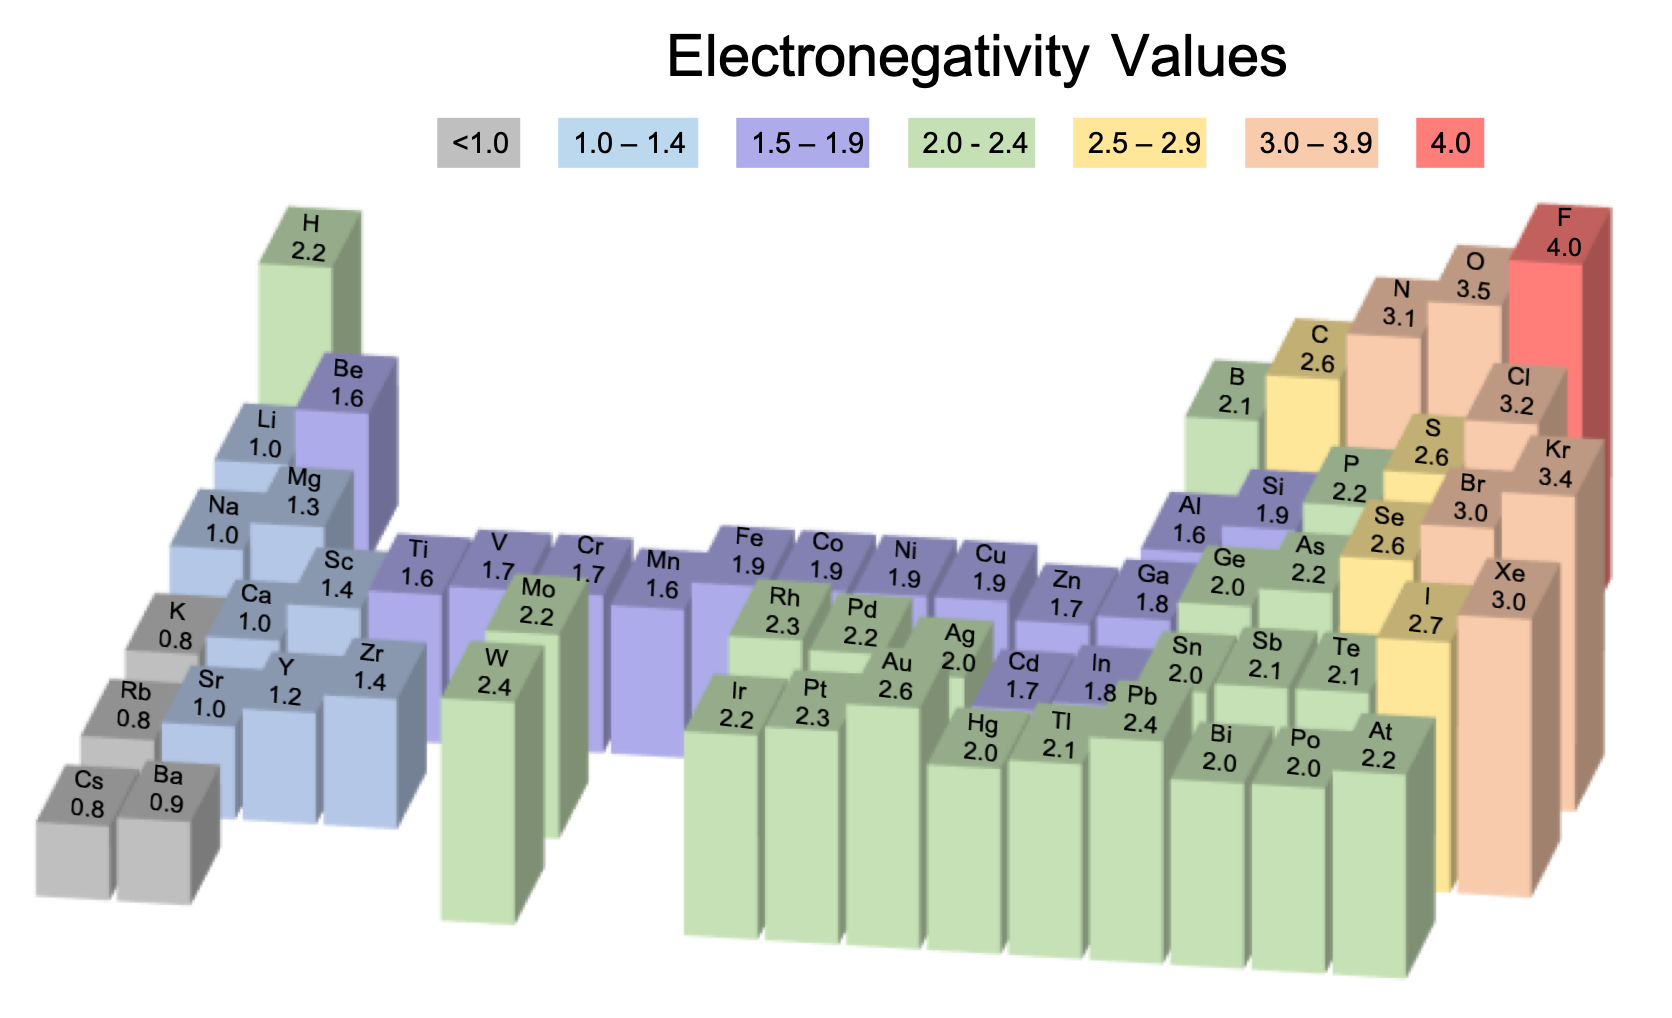 Part of the periodic table is shown. The height of a 3D bar graph shows the electronegativity values for almost all the elements according to the Pauling scale.